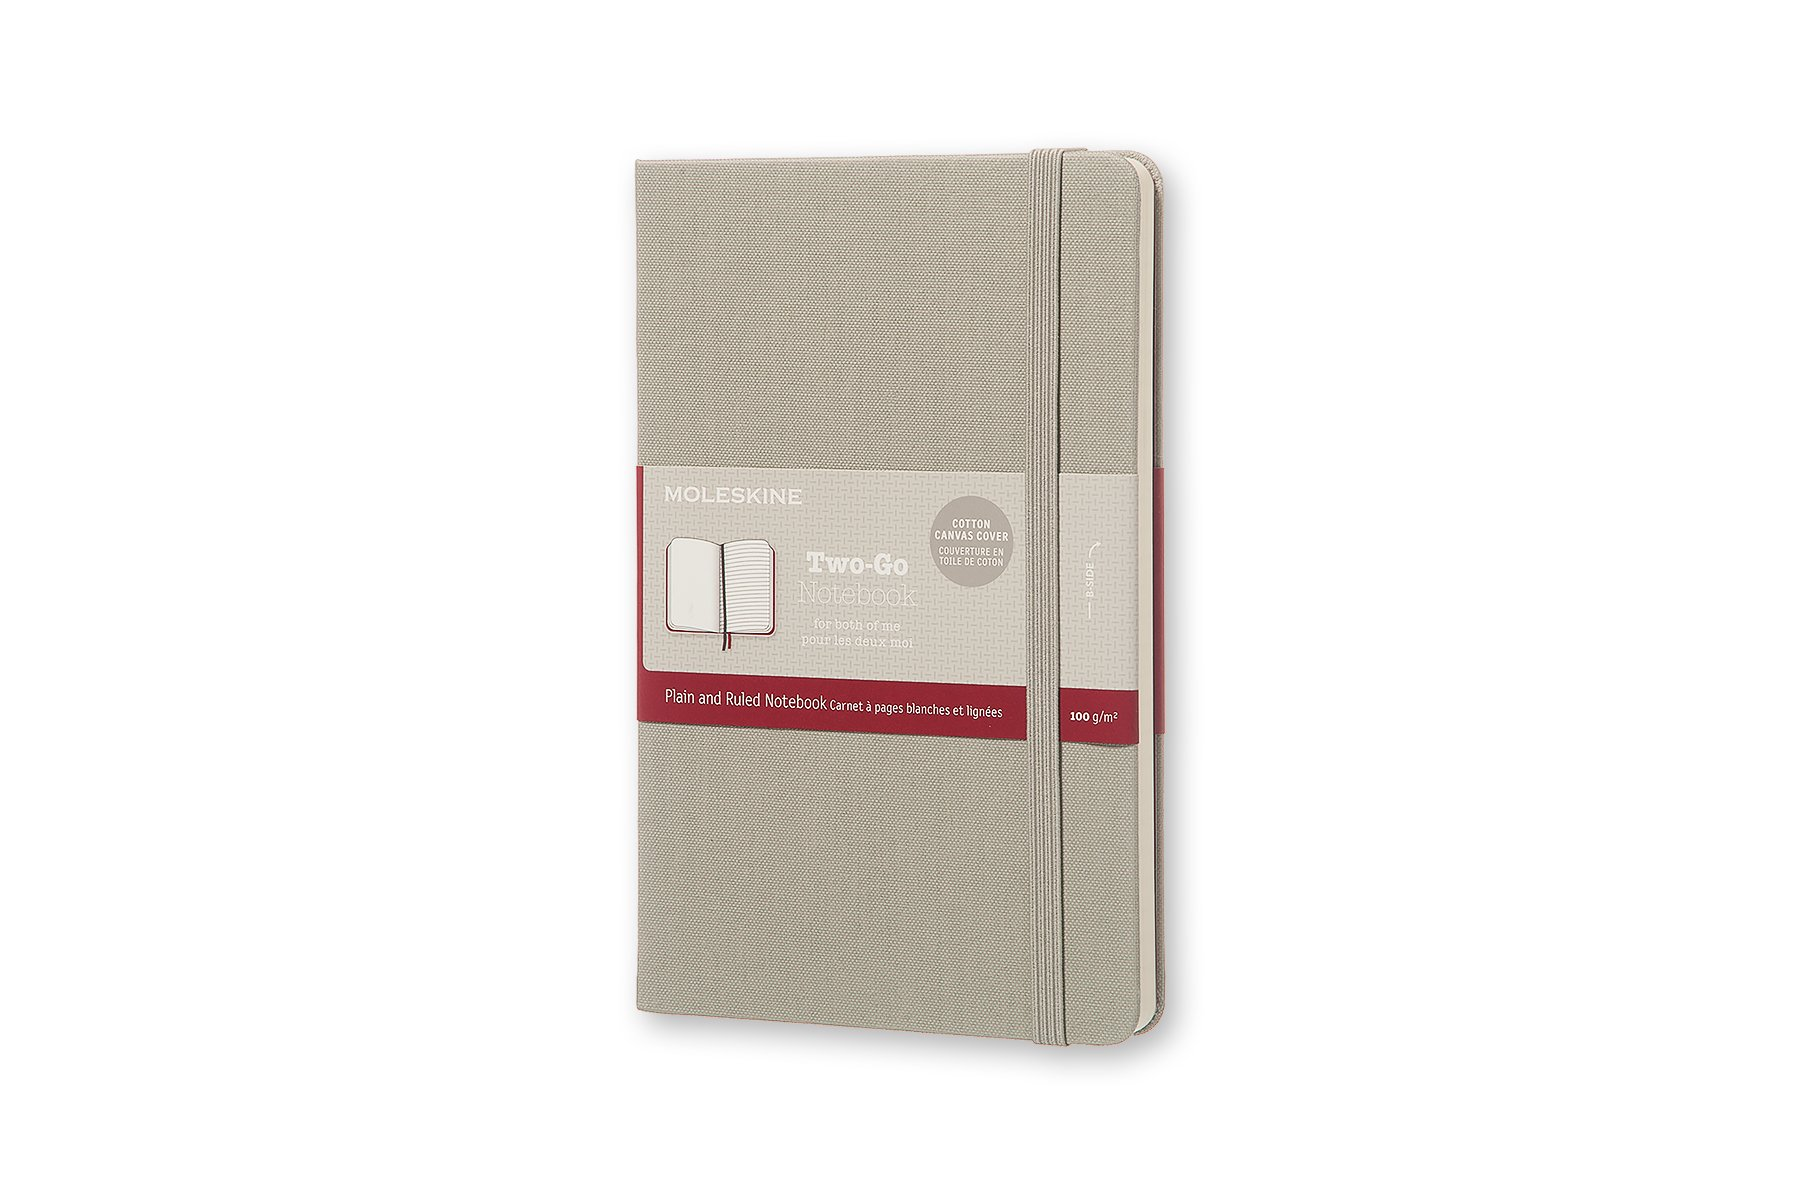 Moleskine Two-Go Hard Cover Notebook, Mixed (Ruled-Pl (QW46)